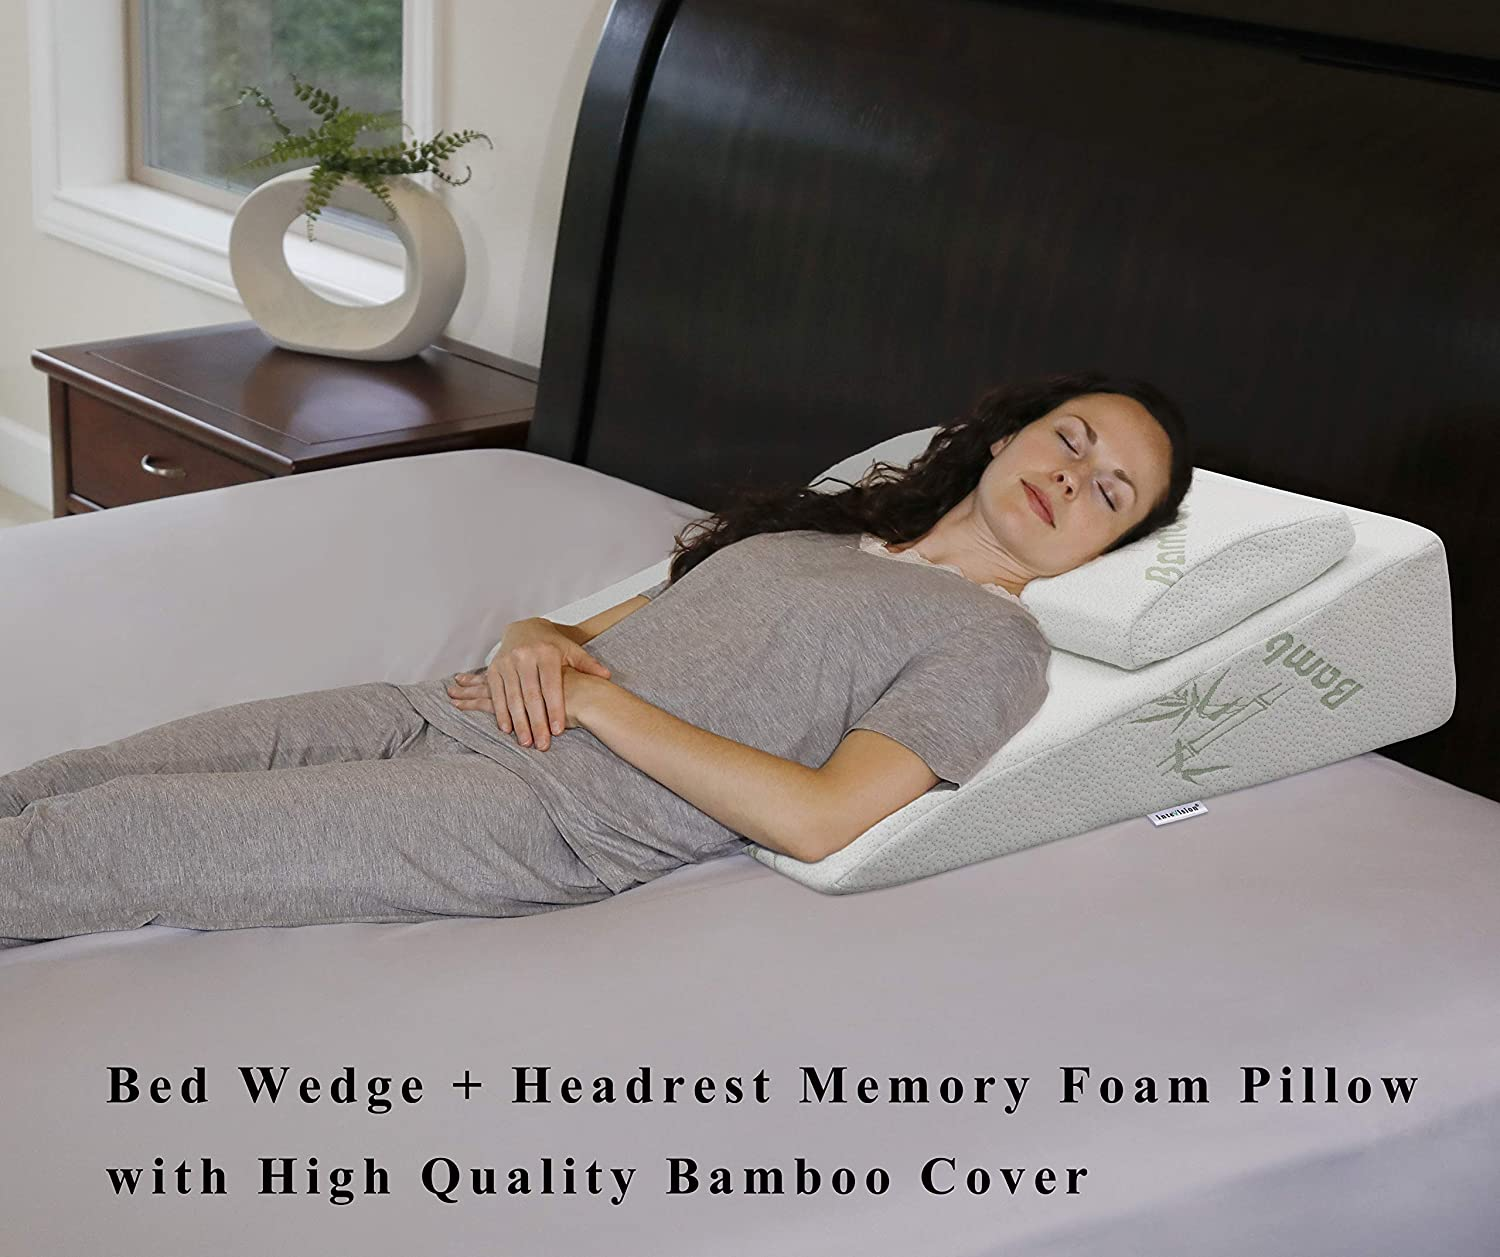 """InteVision Foam Bed Wedge Pillow (26"""" x 25"""" x 7.5"""") Headrest Pillow in ONE Package - 2"""" Memory Foam Top - Removable Bamboo Cover - Helps Relief from Acid Reflux, Post Surgery, Snoring: Health & Personal Care"""